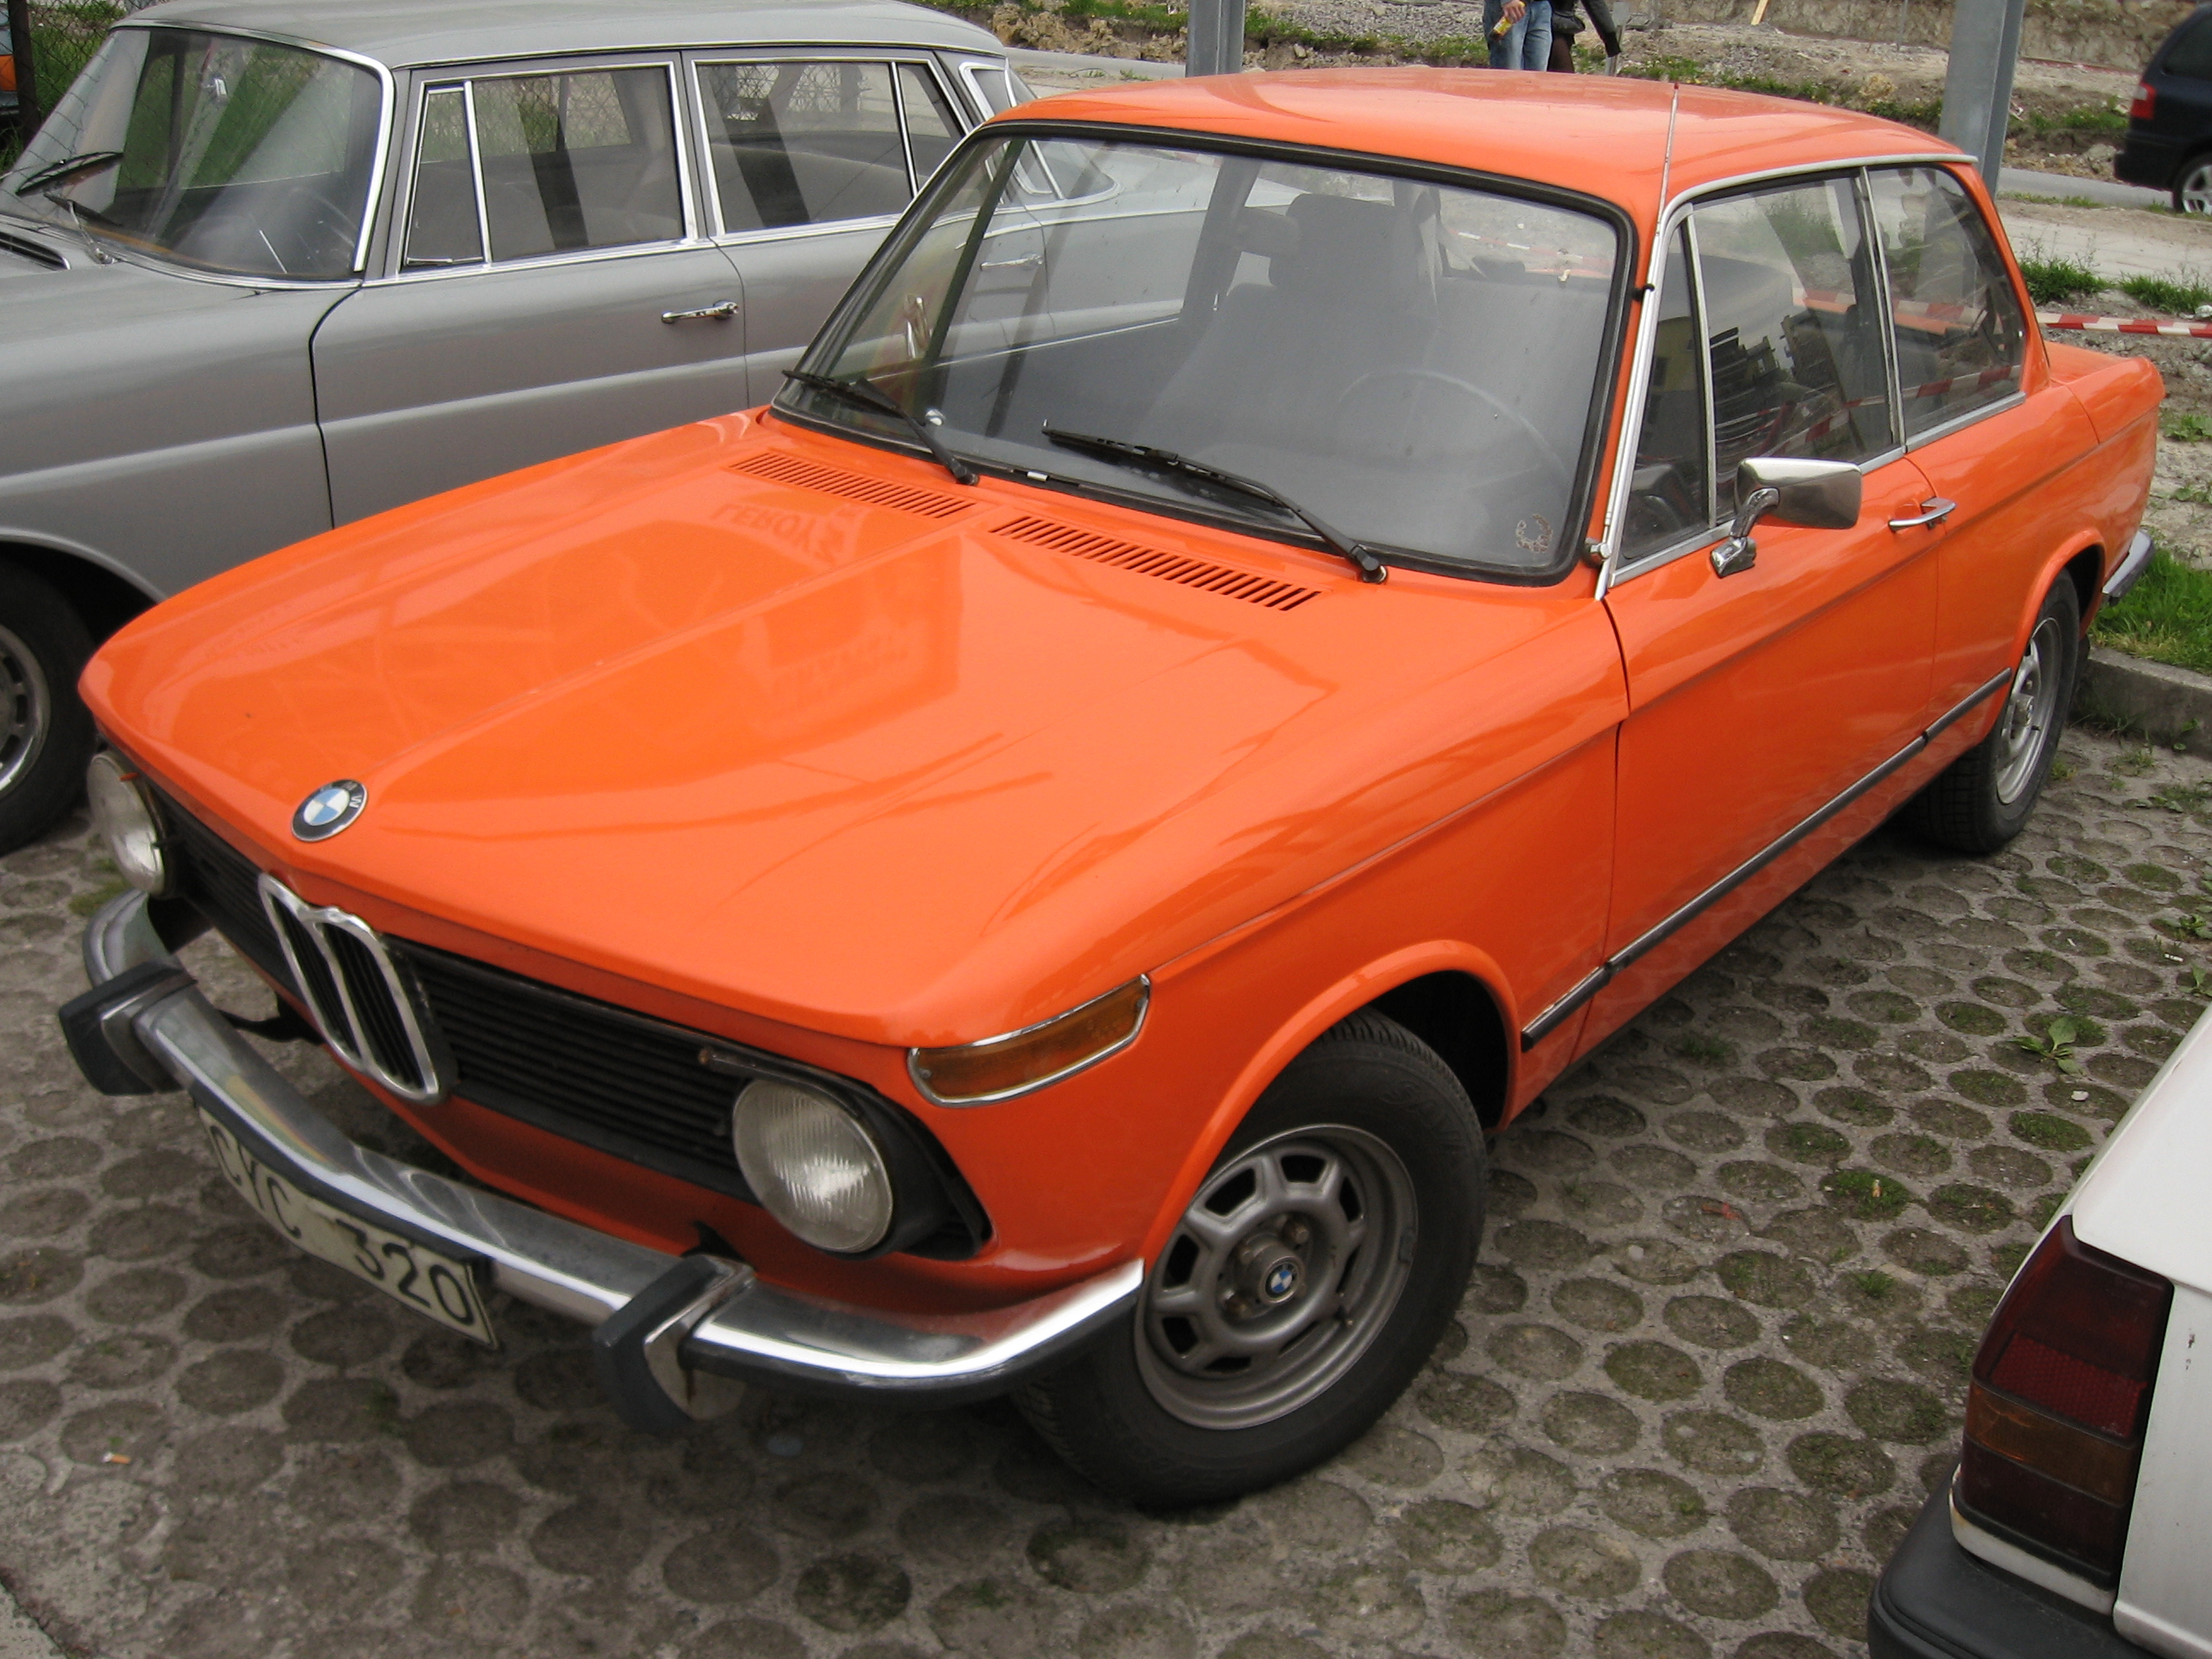 Bmw 2002 For Sale >> File:Orange BMW 1502 on a parking lot in Kraków (1).jpg ...